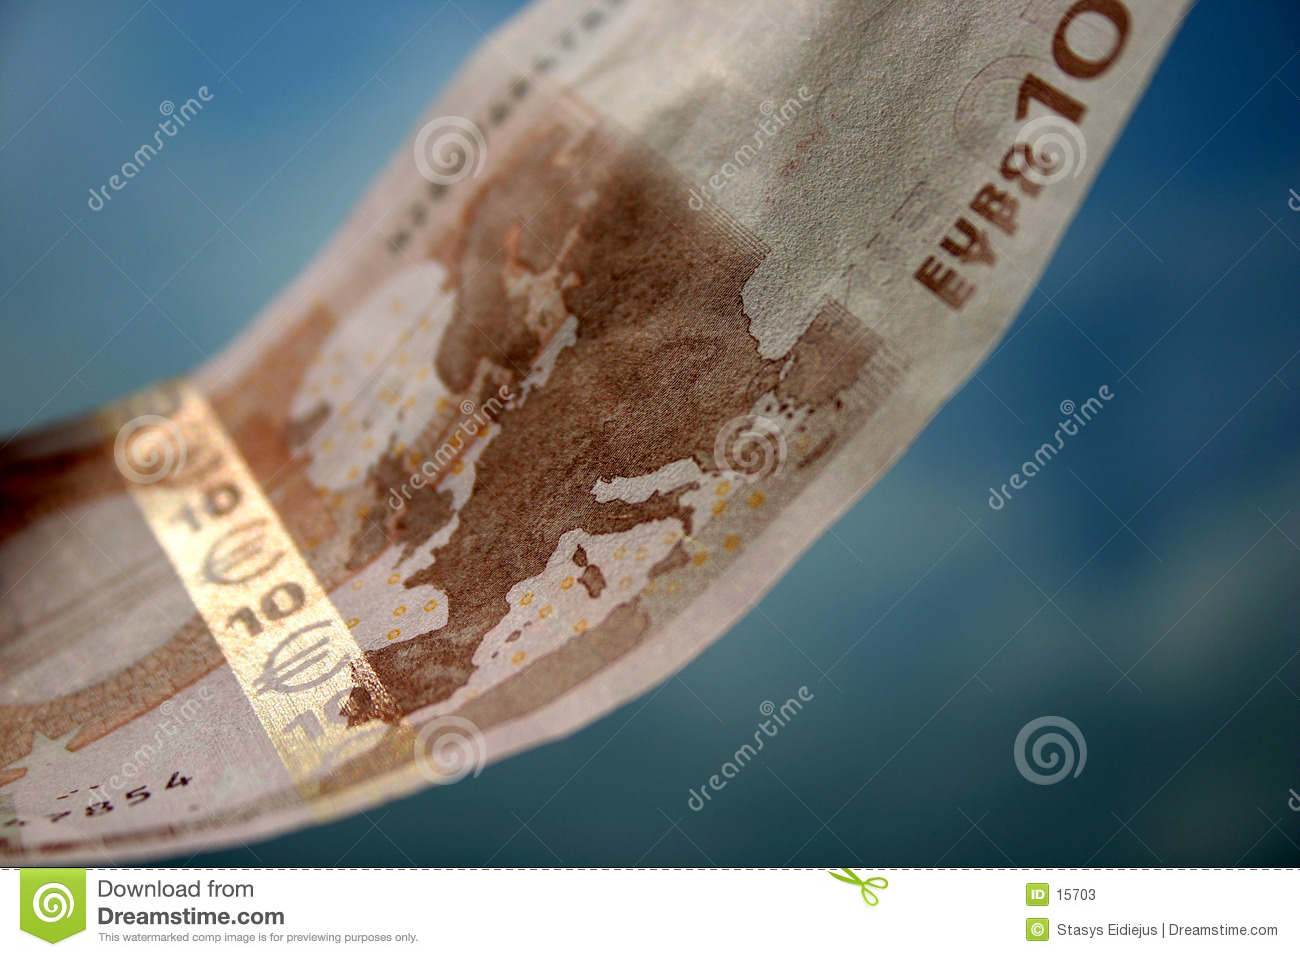 The close-up of 10 Euros